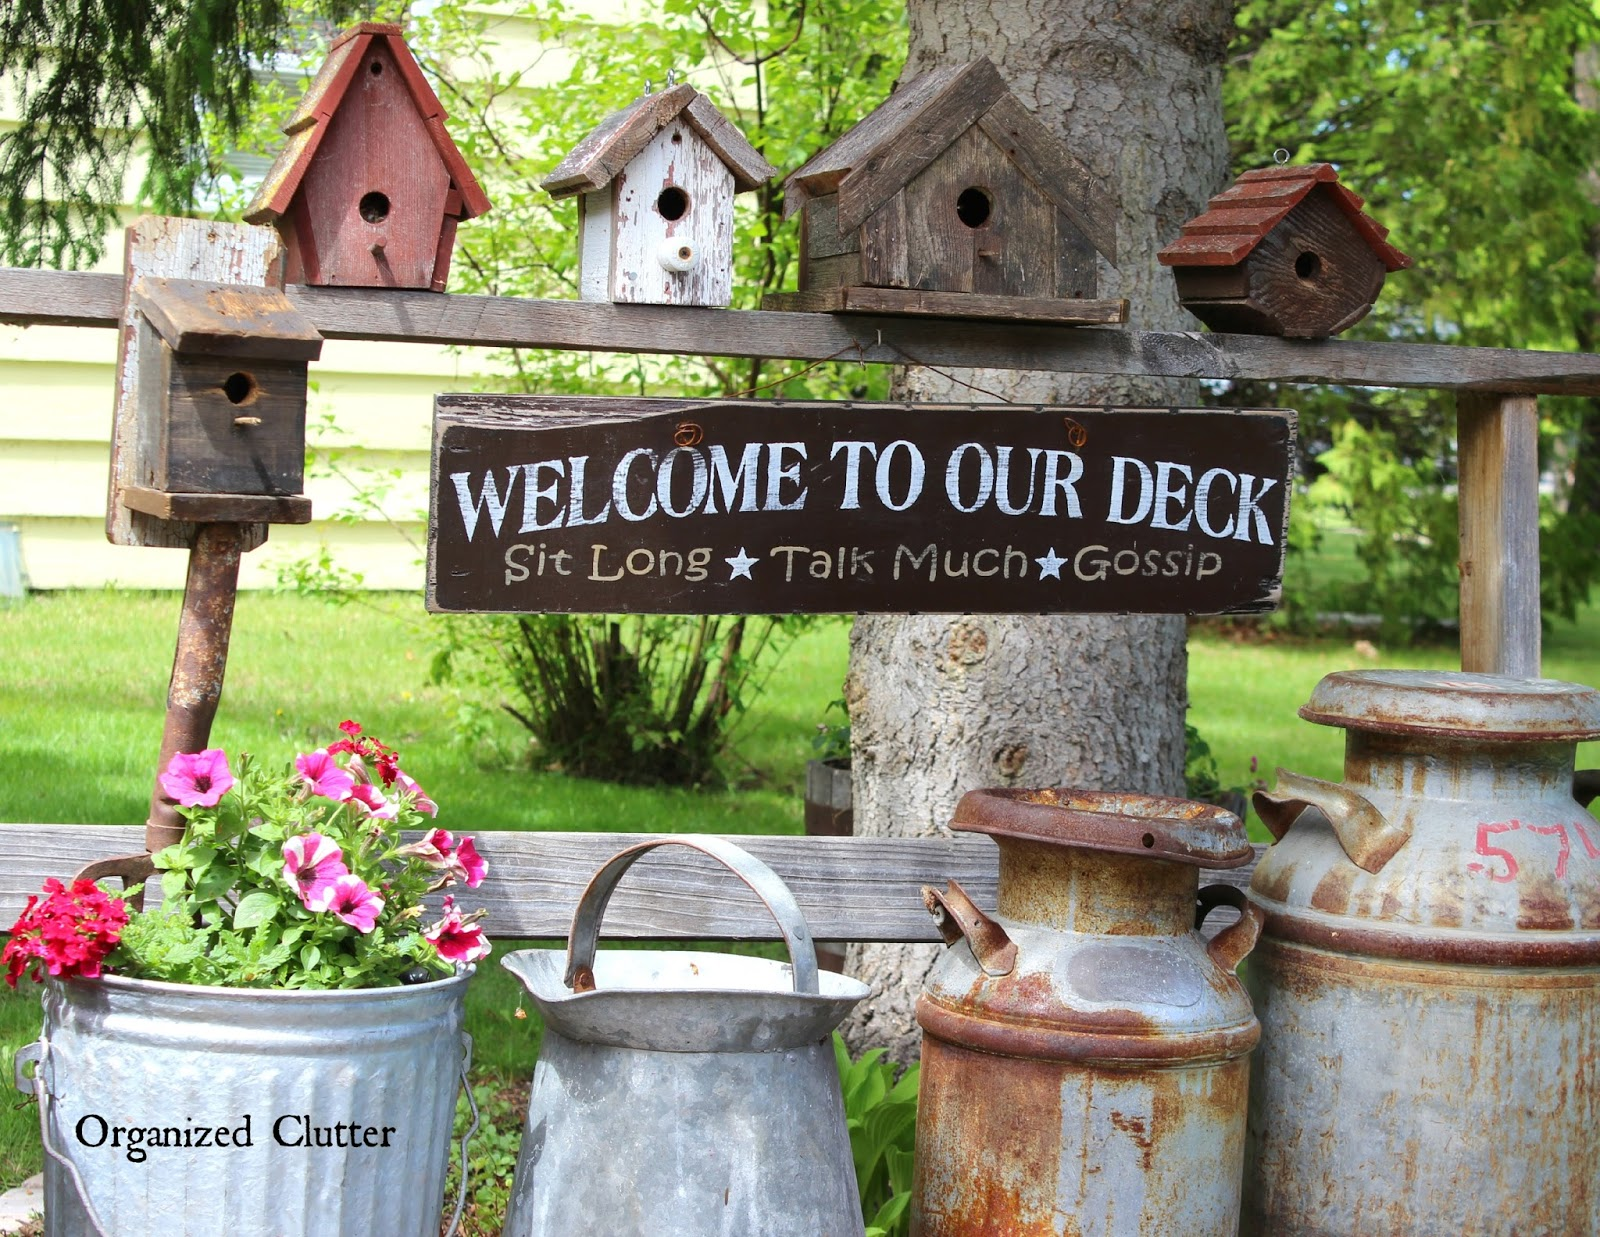 organized clutter: decorating the deck with rustic birdhouses